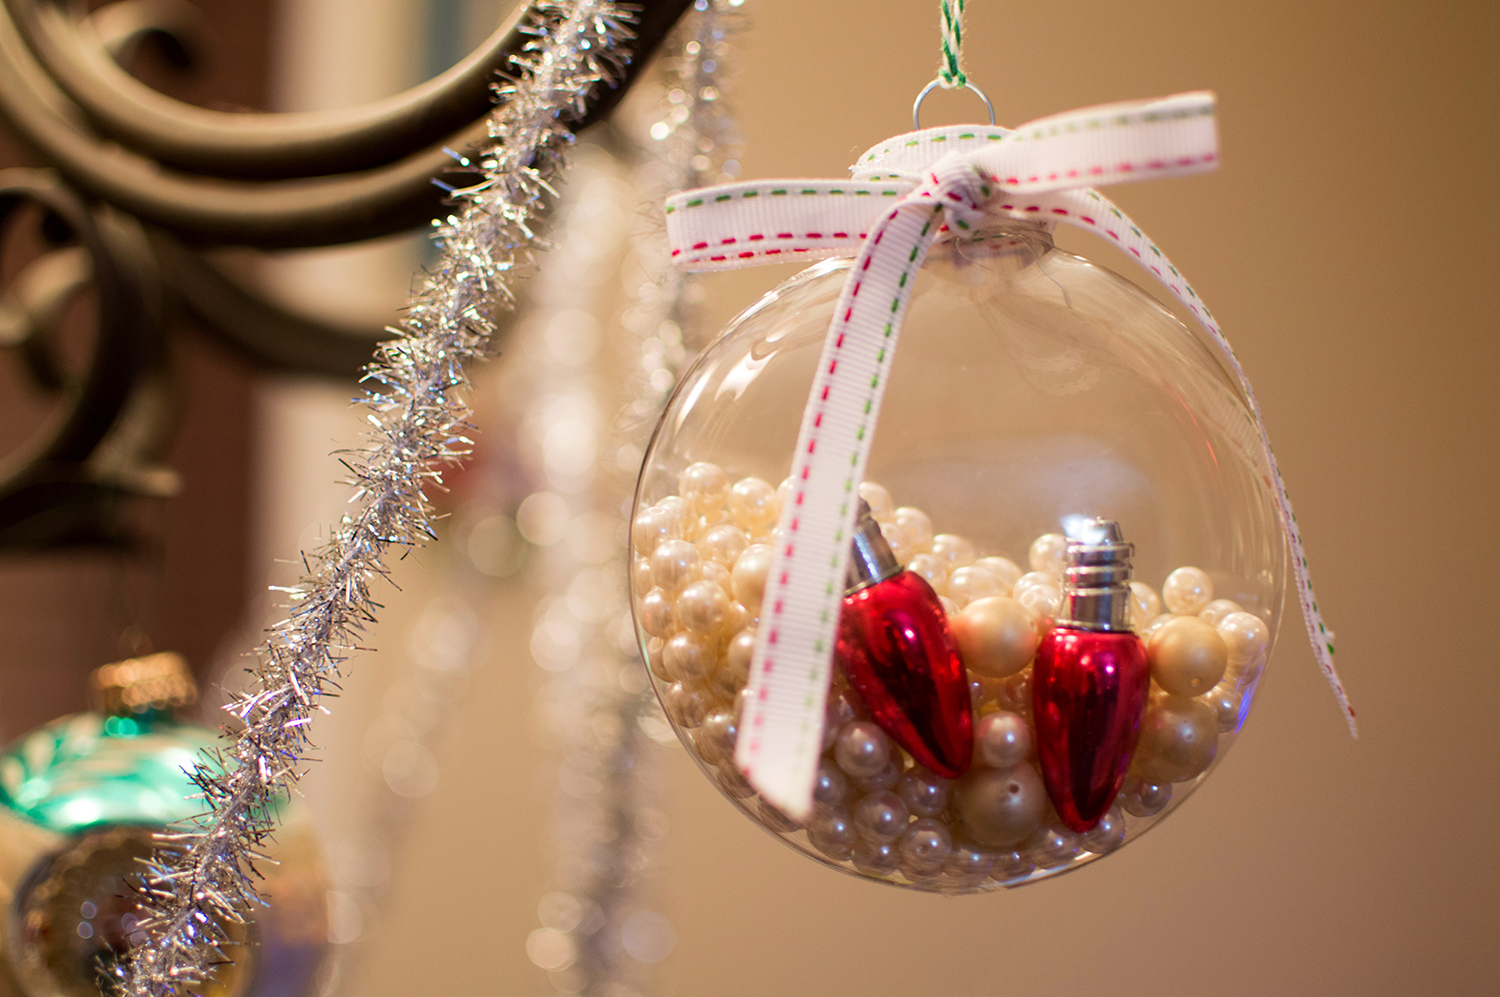 Easy diy ornaments 3 easy christmas crafts for the holiday weekend anyone else have a pile of broken jewelry you cant make yourself throw away in mine has sat a pile of old fake pearls and these broken light bulb earrings solutioingenieria